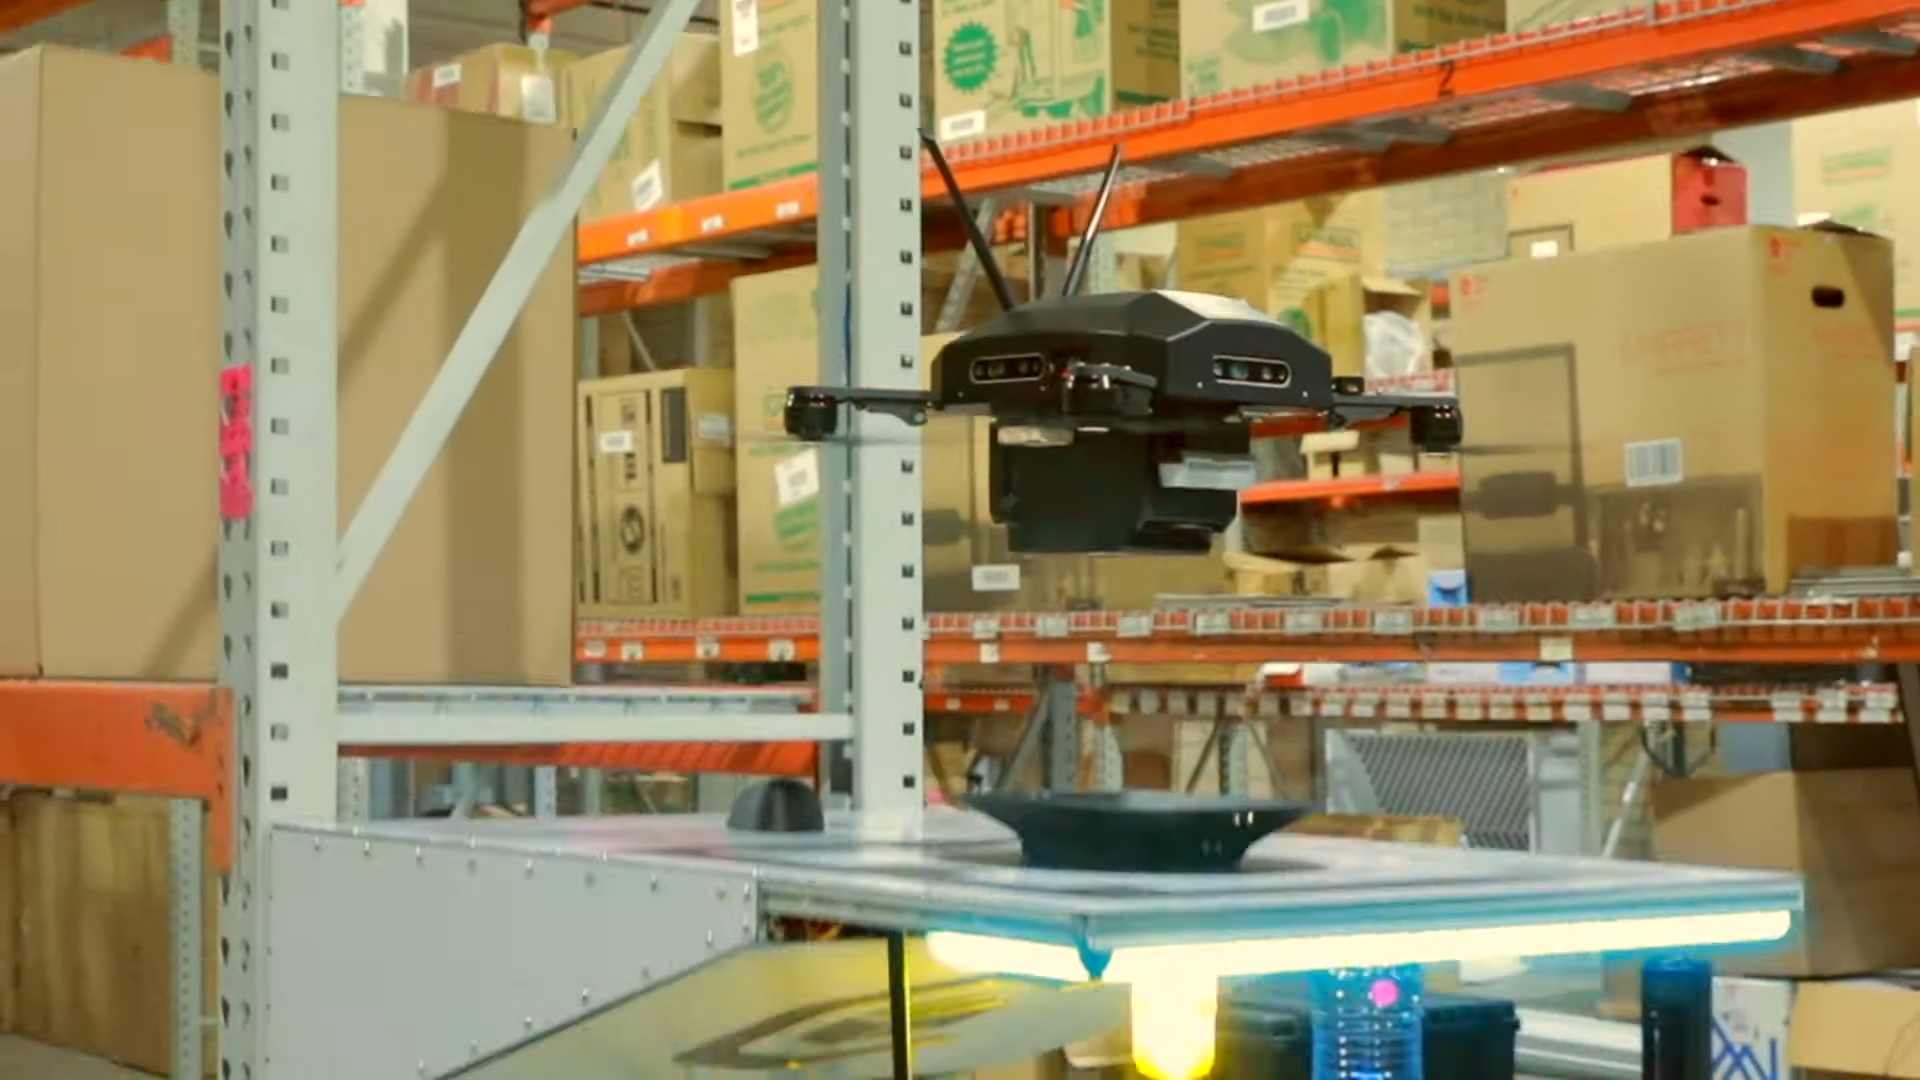 Drone flying in a warehouse